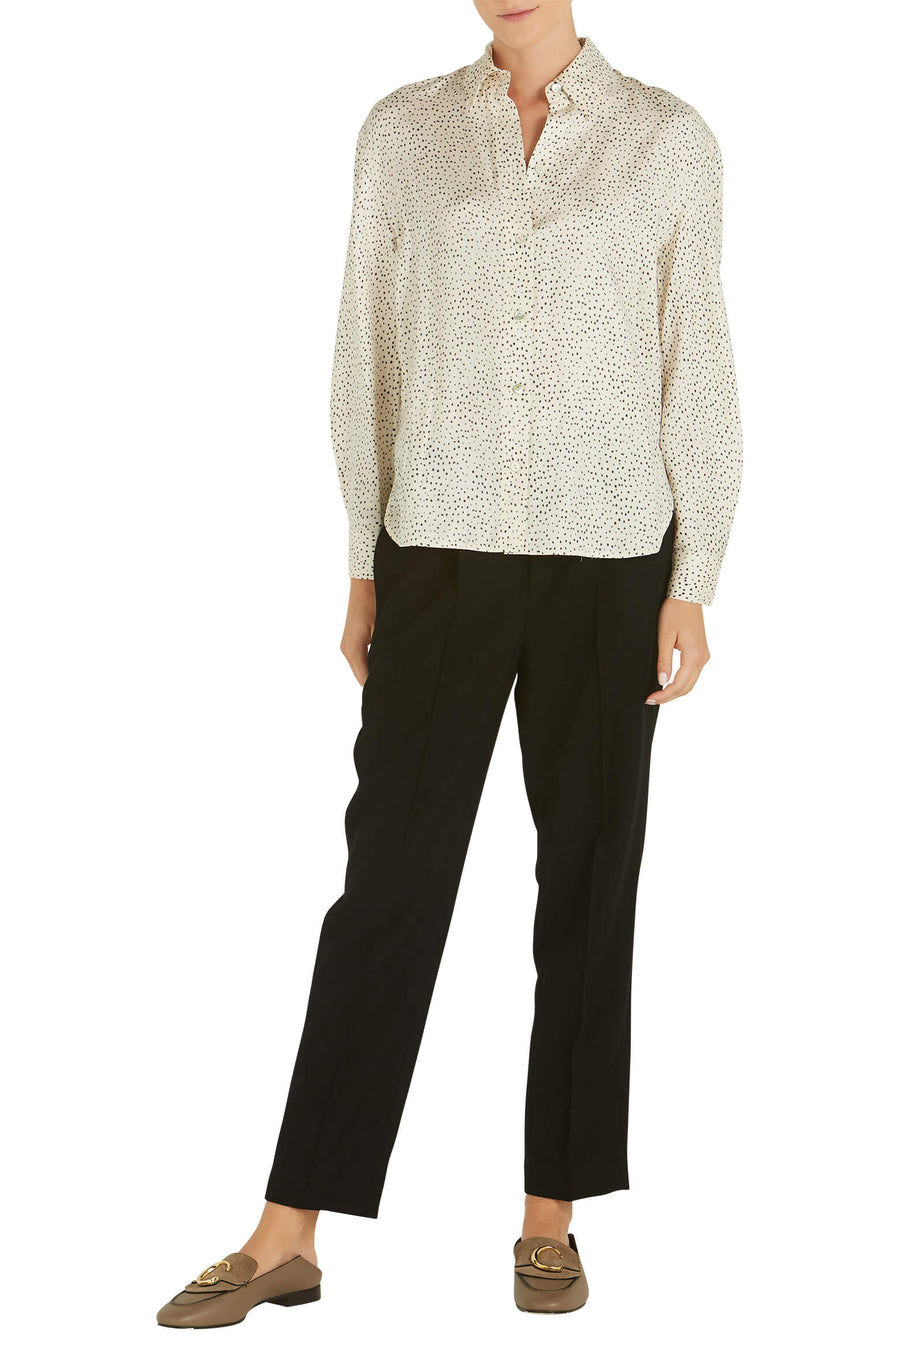 VINCE Ditsy Dot LS Blouse in Chiffon from The New Trend